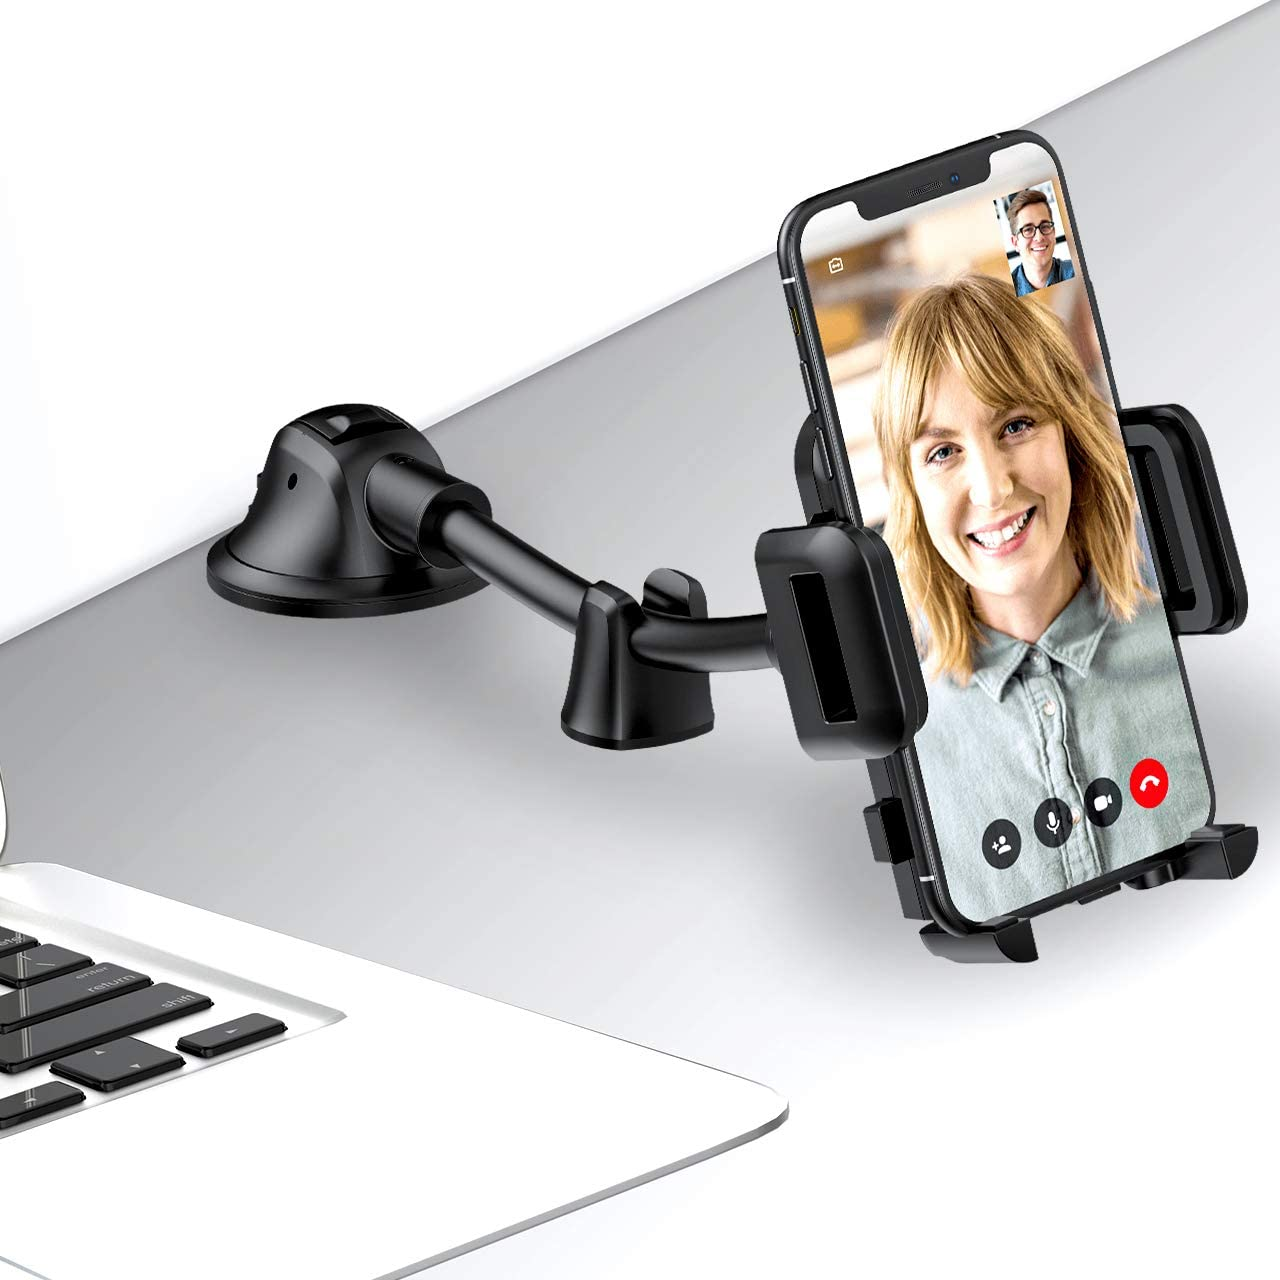 Strong Sticky Gel Suction Cup Mpow Car Phone Mount Anti-Shake Stabilizer Compatible iPhone 11 pro//11 pro max//XS//XR//X//8//7,Galaxy Dashboard Windshield Car Phone Holder with Long Arm Moto and More